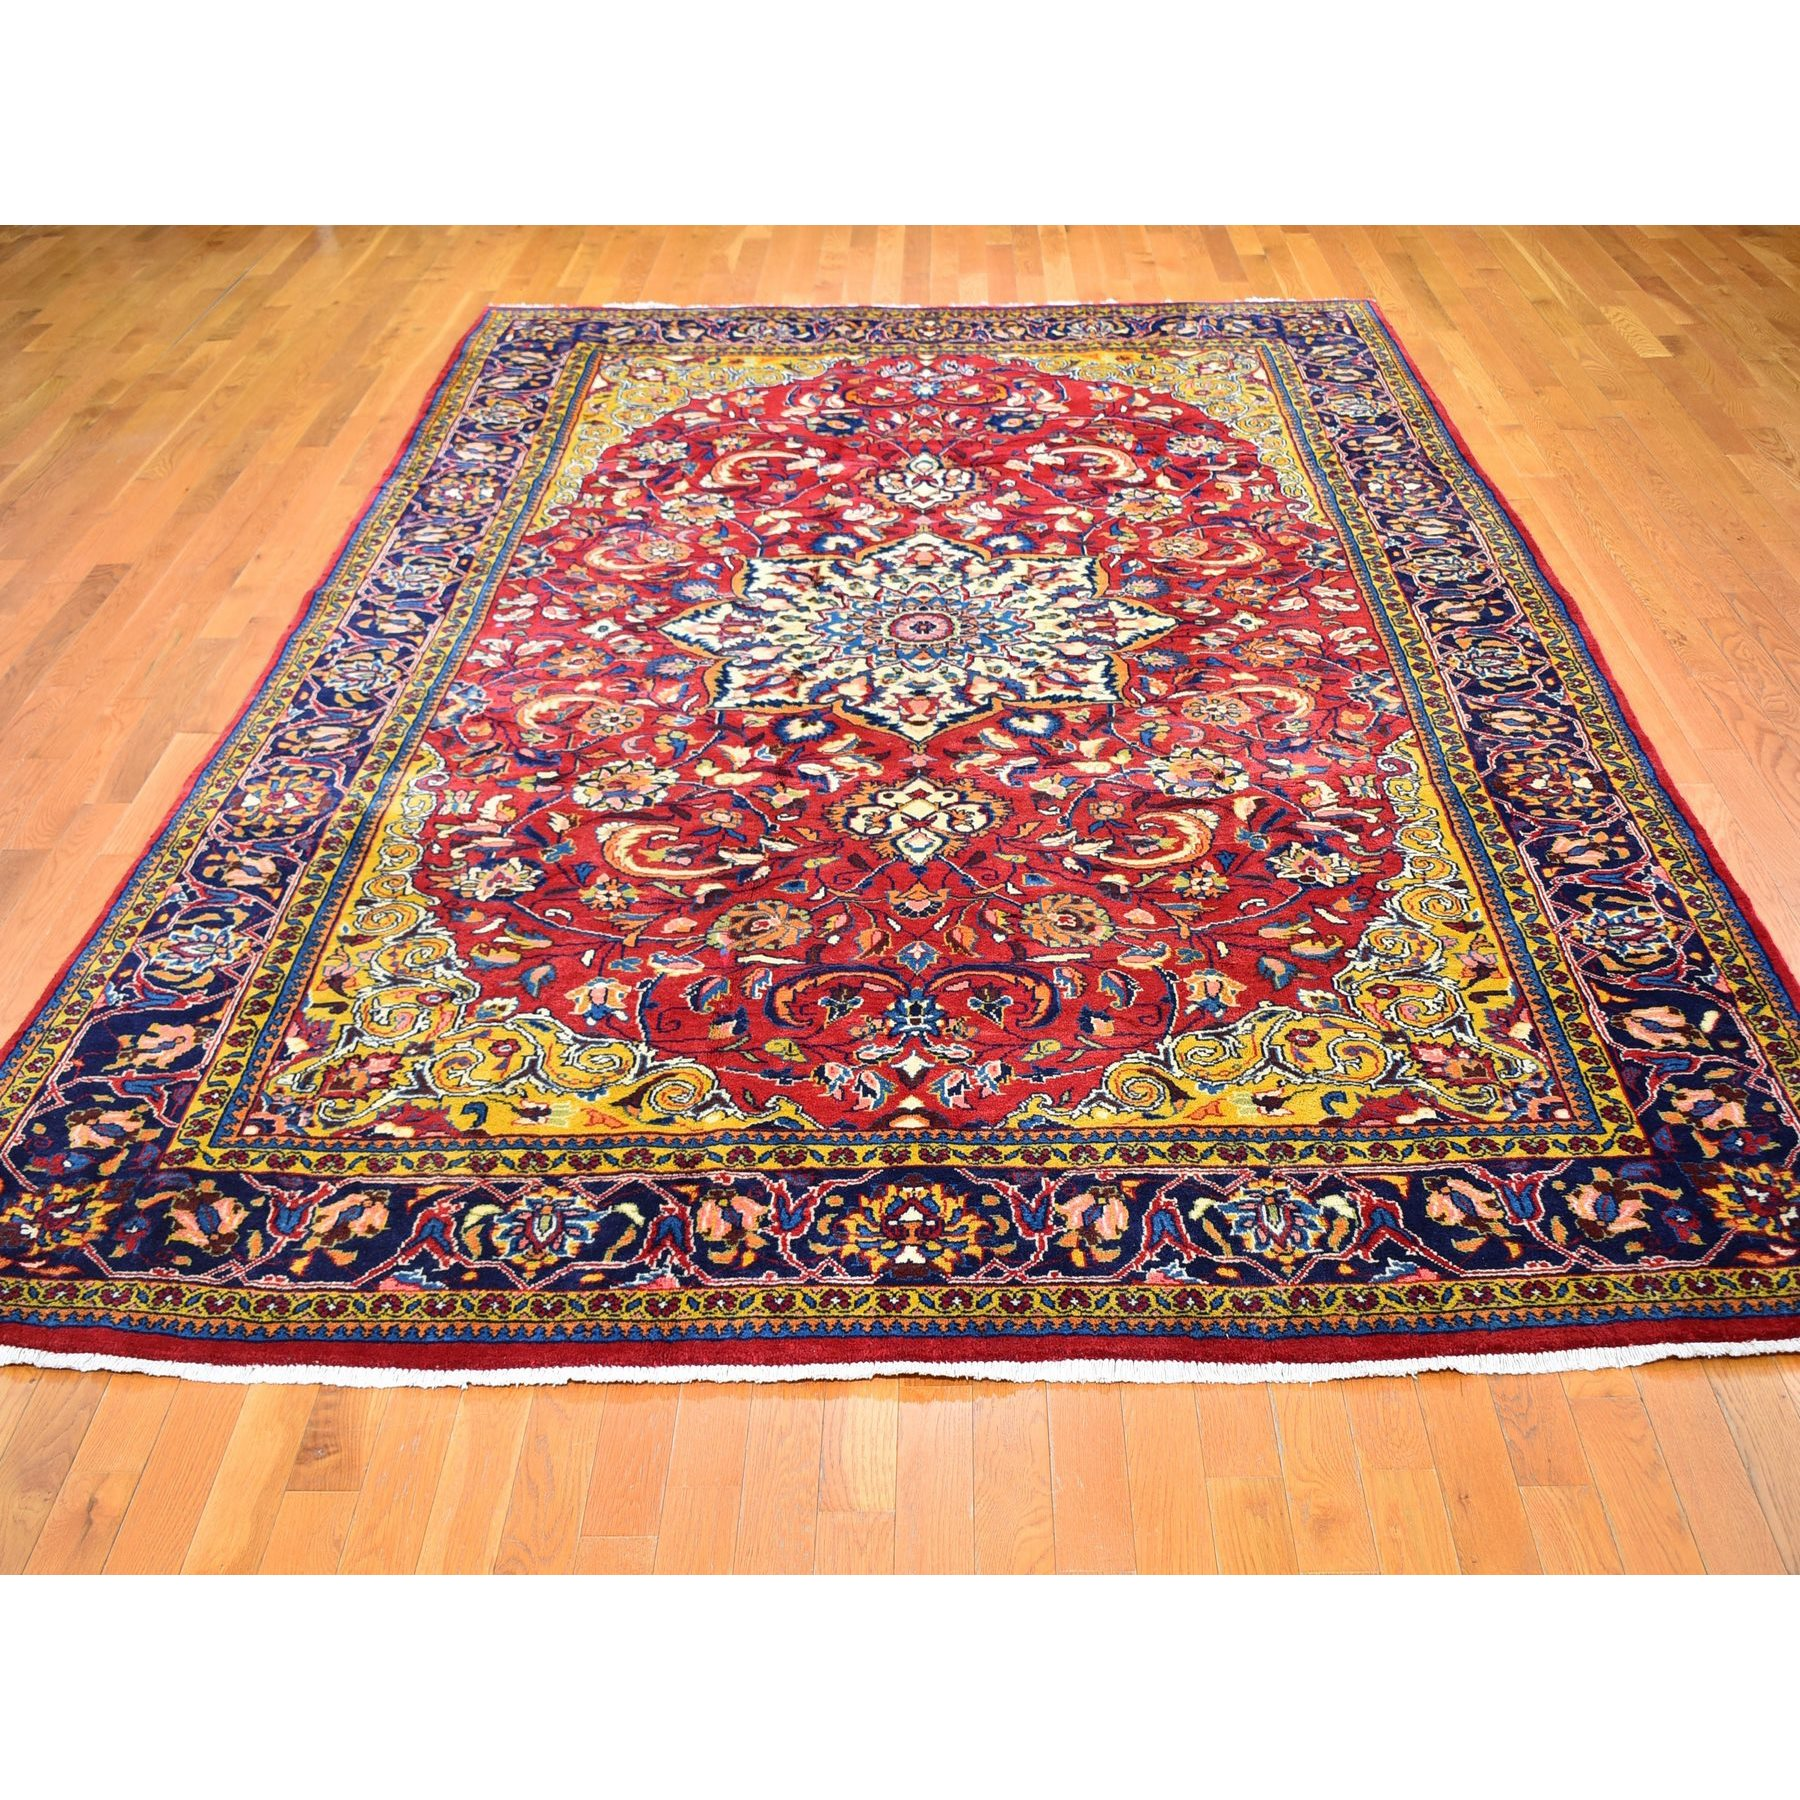 "8'3""x12'7"" Semi Antique Persian Mahal with Yellow Corners Full Pile Excellent Condition Pure Wool Hand Woven Oriental Rug"